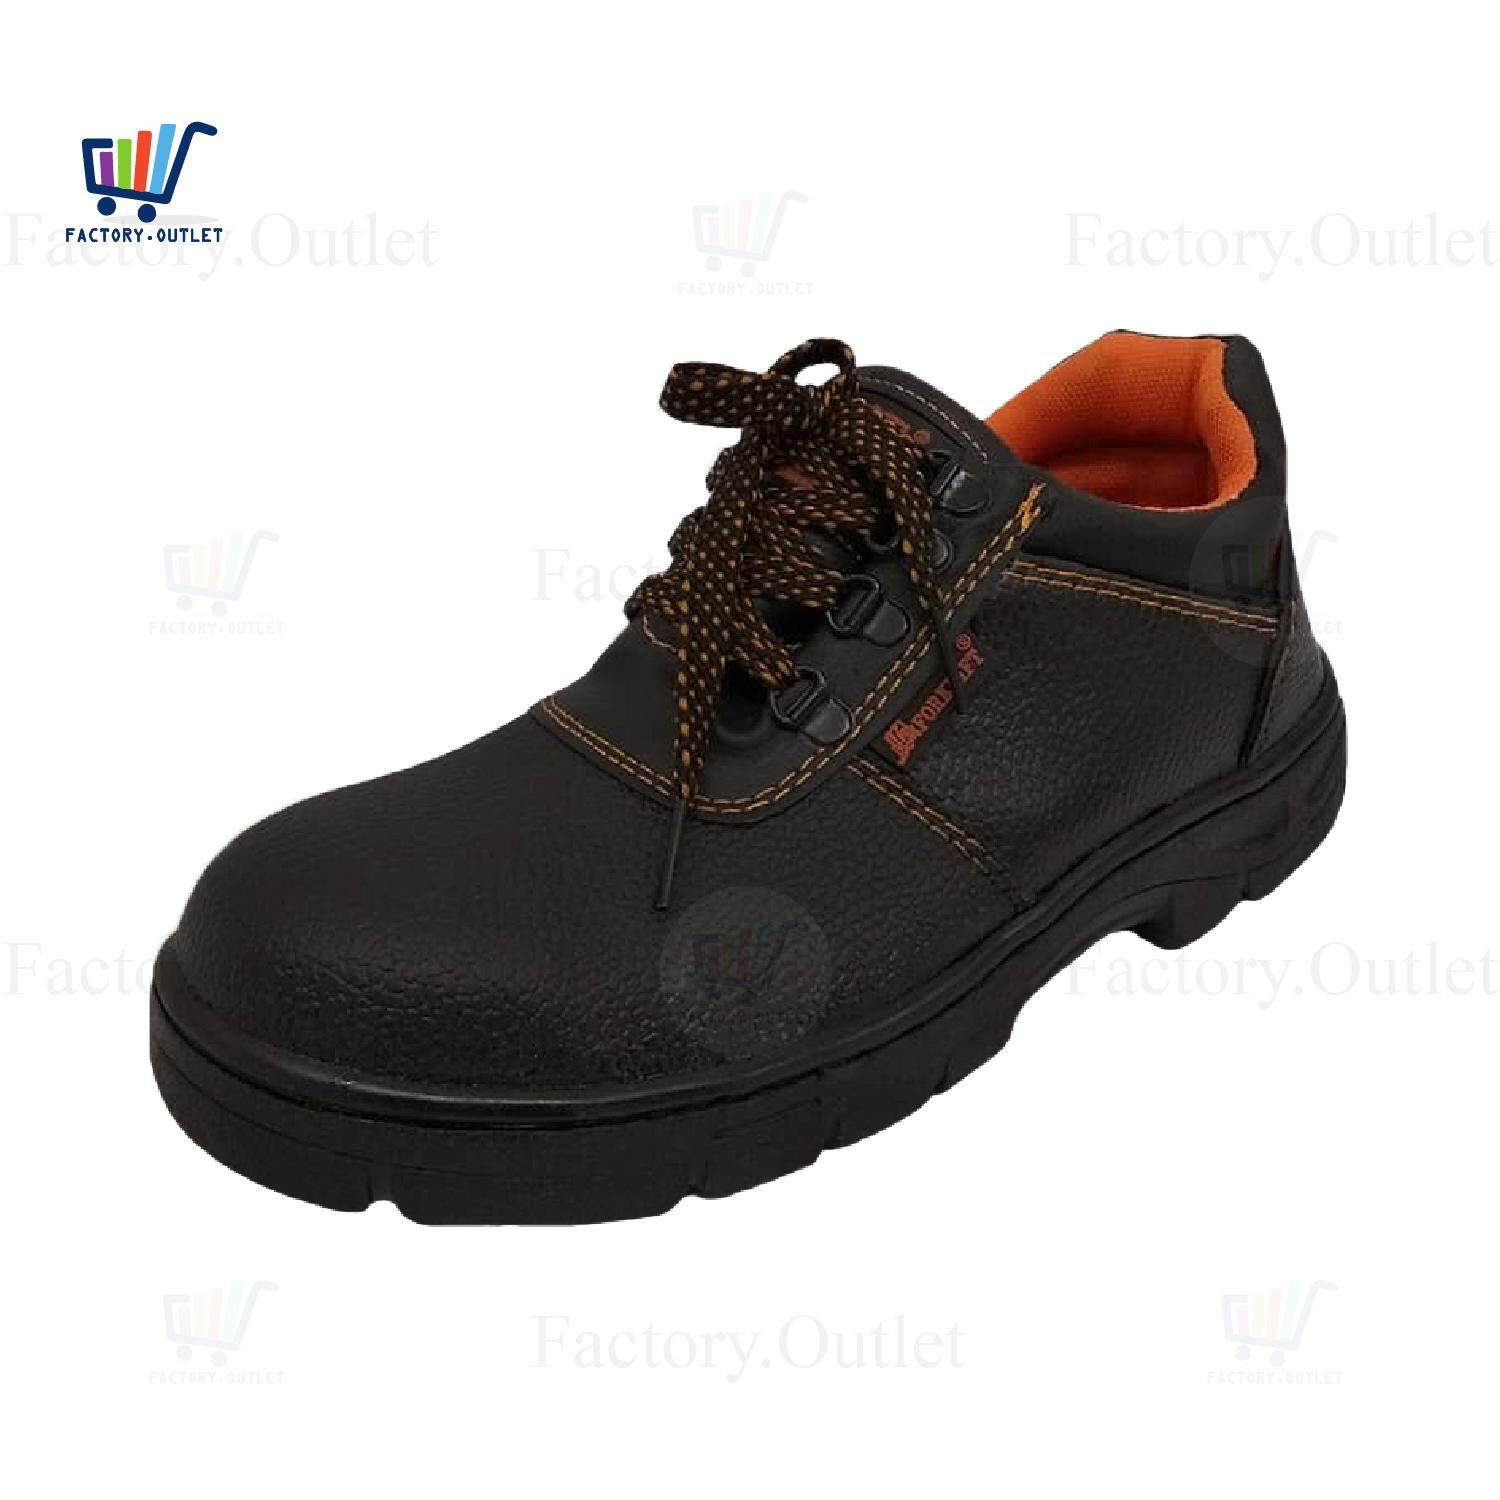 92dc9f301c1 Safety Boot Shoe Low Cut Safety Boot Forklift